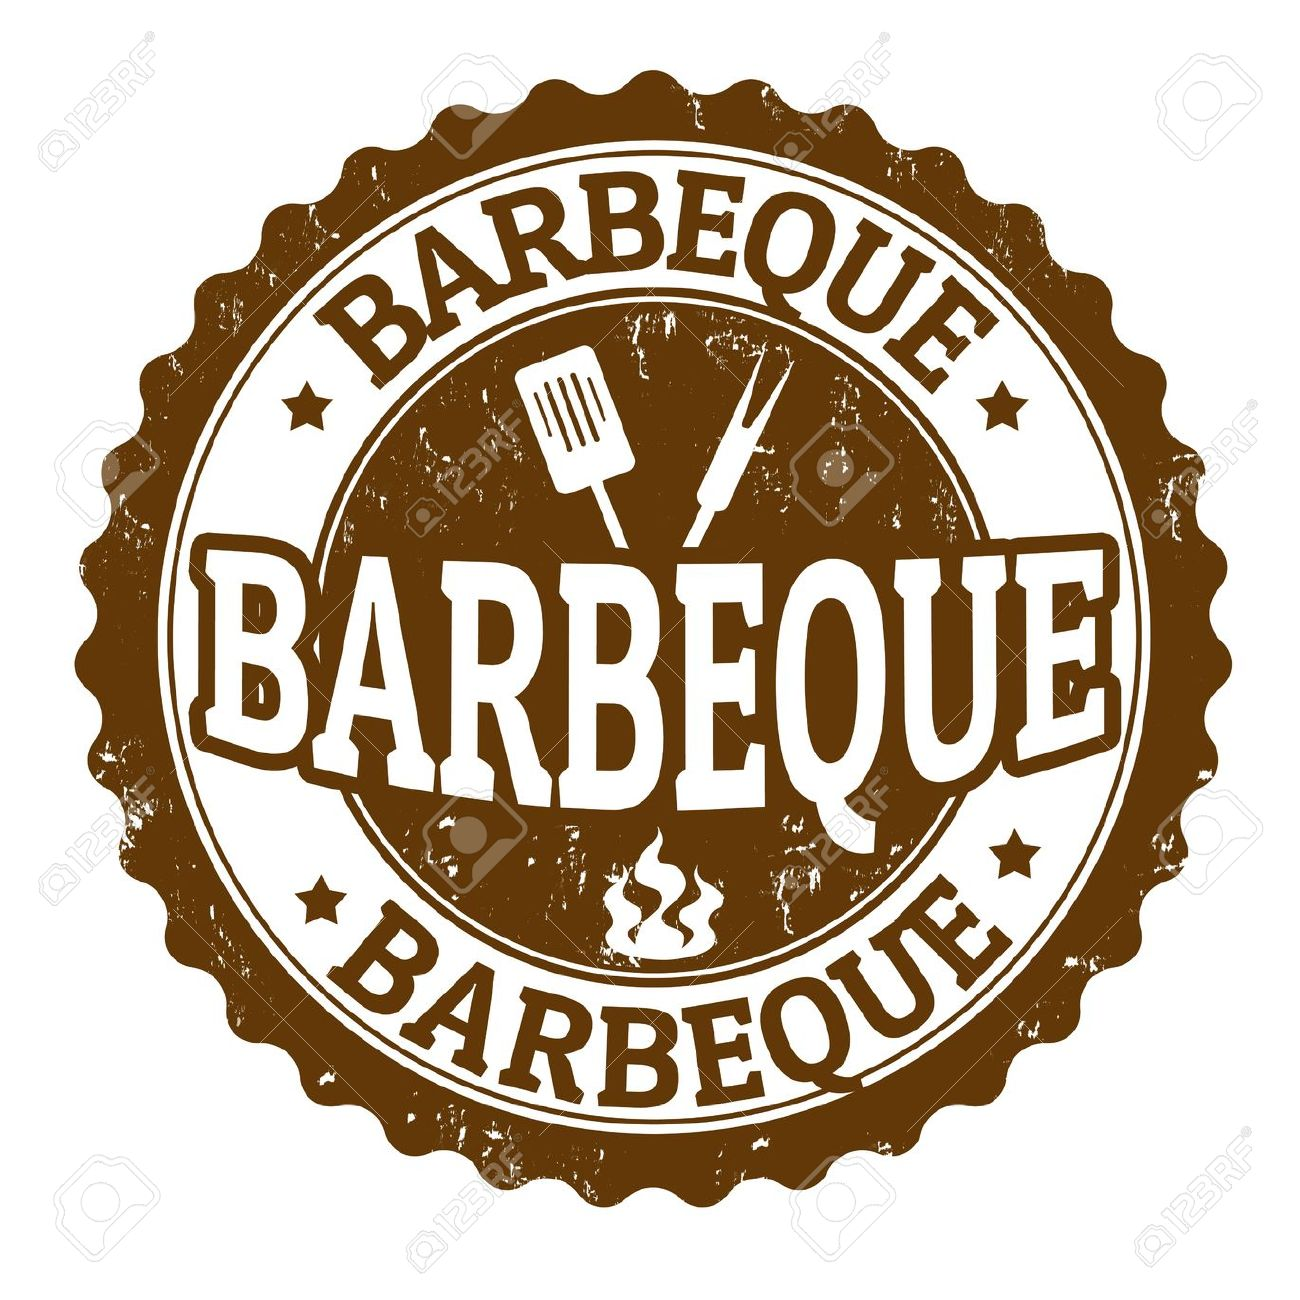 Barbecue Stock Illustrations Cliparts And Royalty Free Barbecue: https://clipartion.com/free-clipart-5271